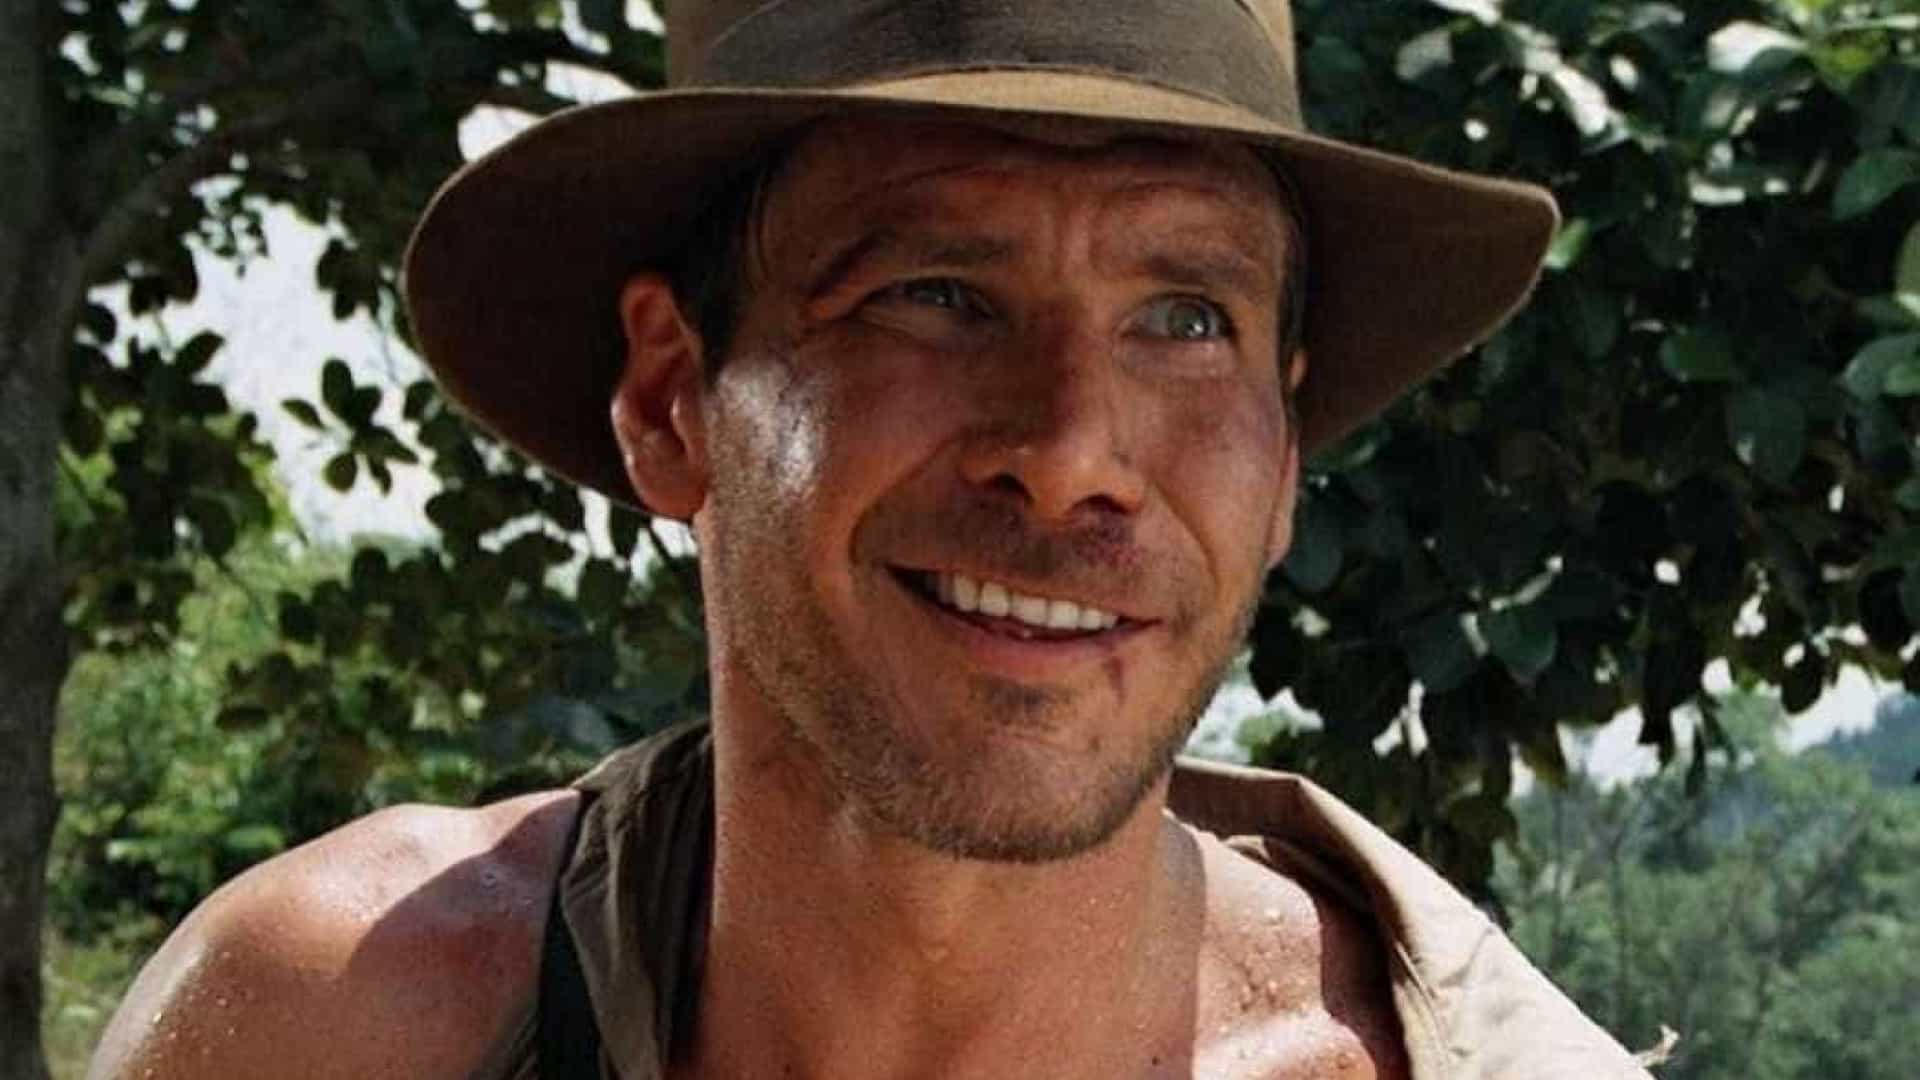 Revista elege Indiana Jones o maior personagem da história do cinema